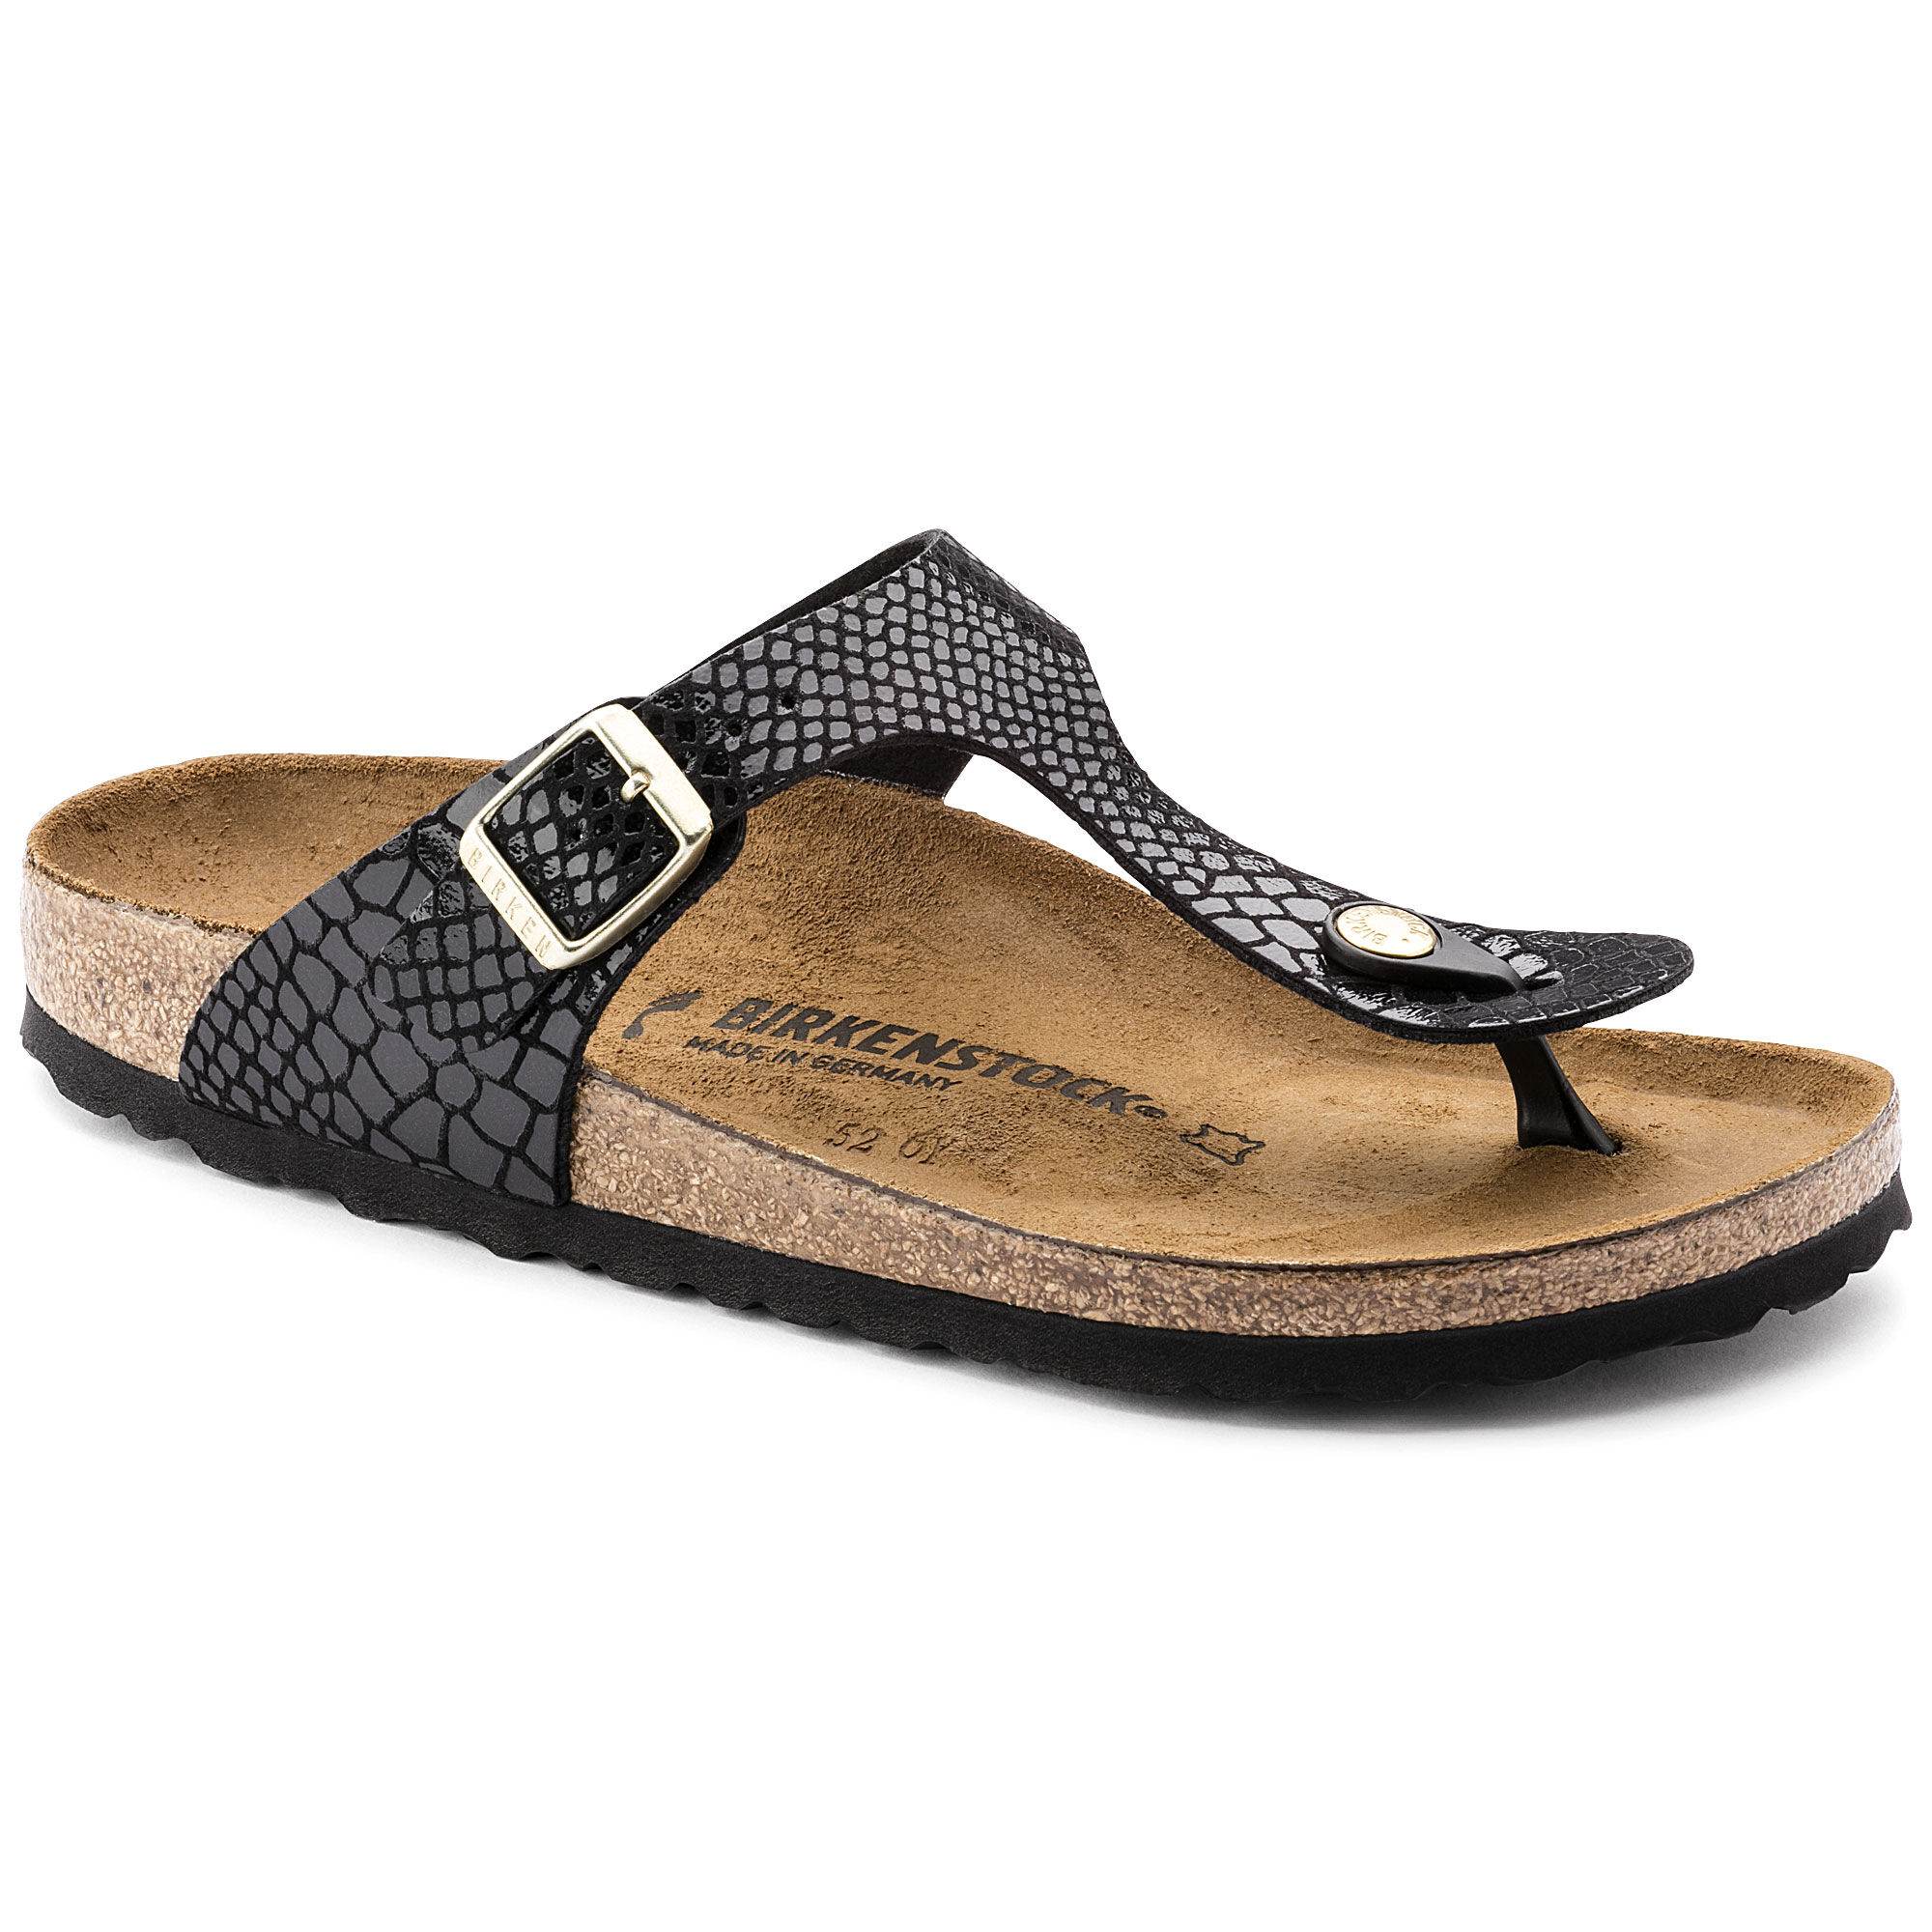 Newest Birkenstock Gizeh Flor W Black Womens Flip Flops Outlet UK1078